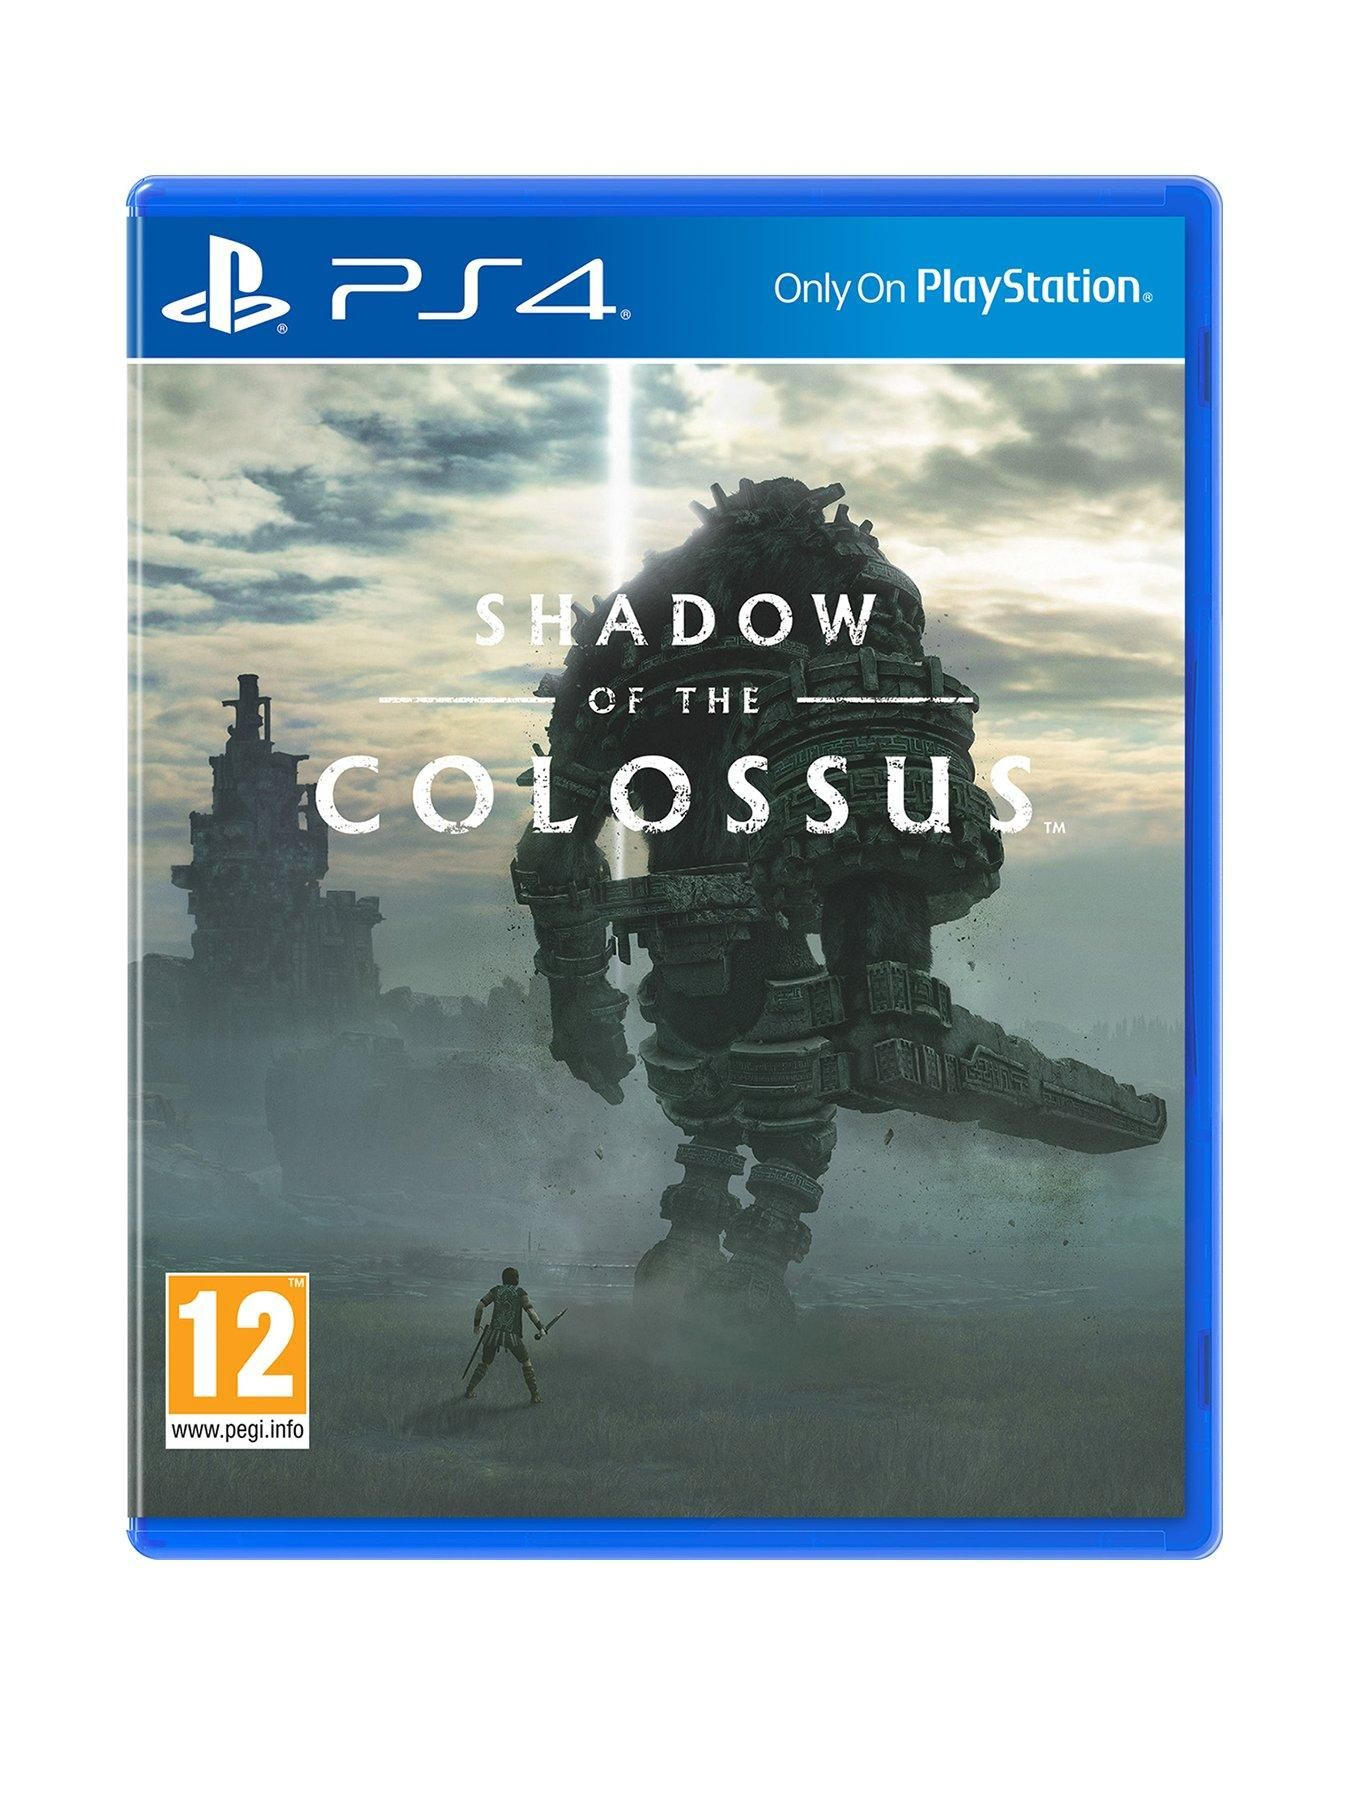 Playstation 4 Shadow Of The Colossus Ps4 In One Colour Shadow